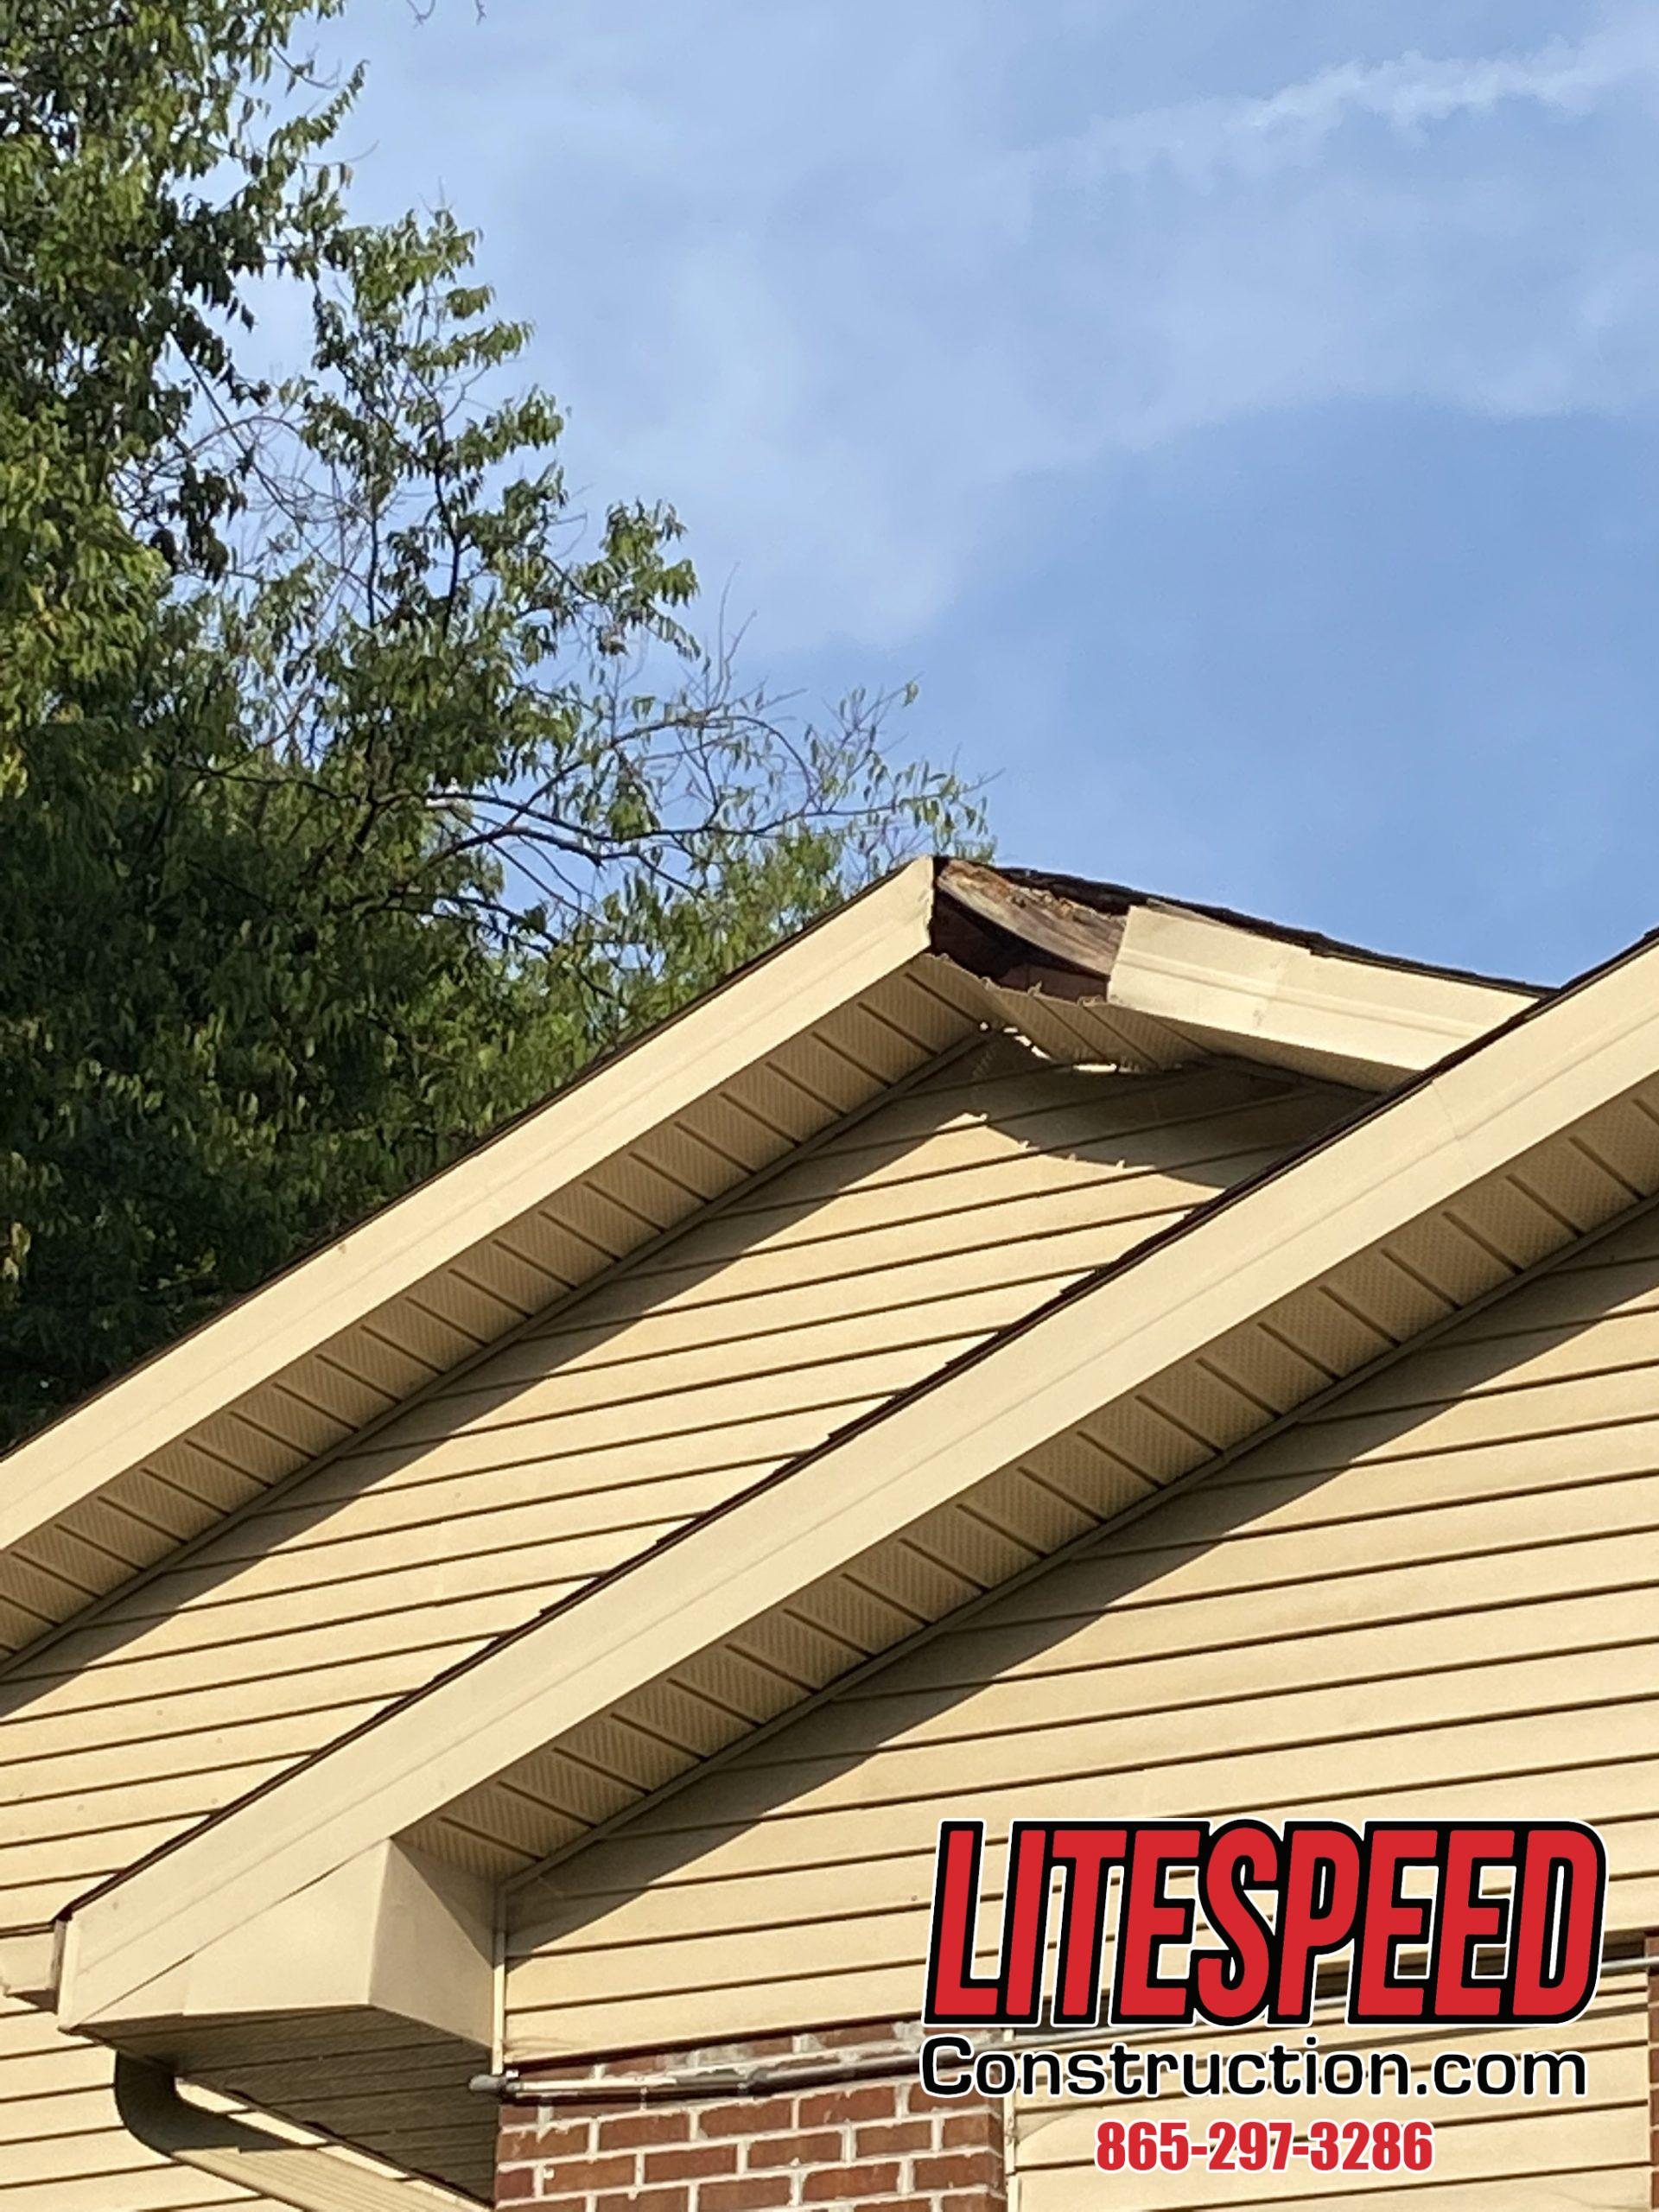 THis is a picture of fascia metal that needs to be replaced